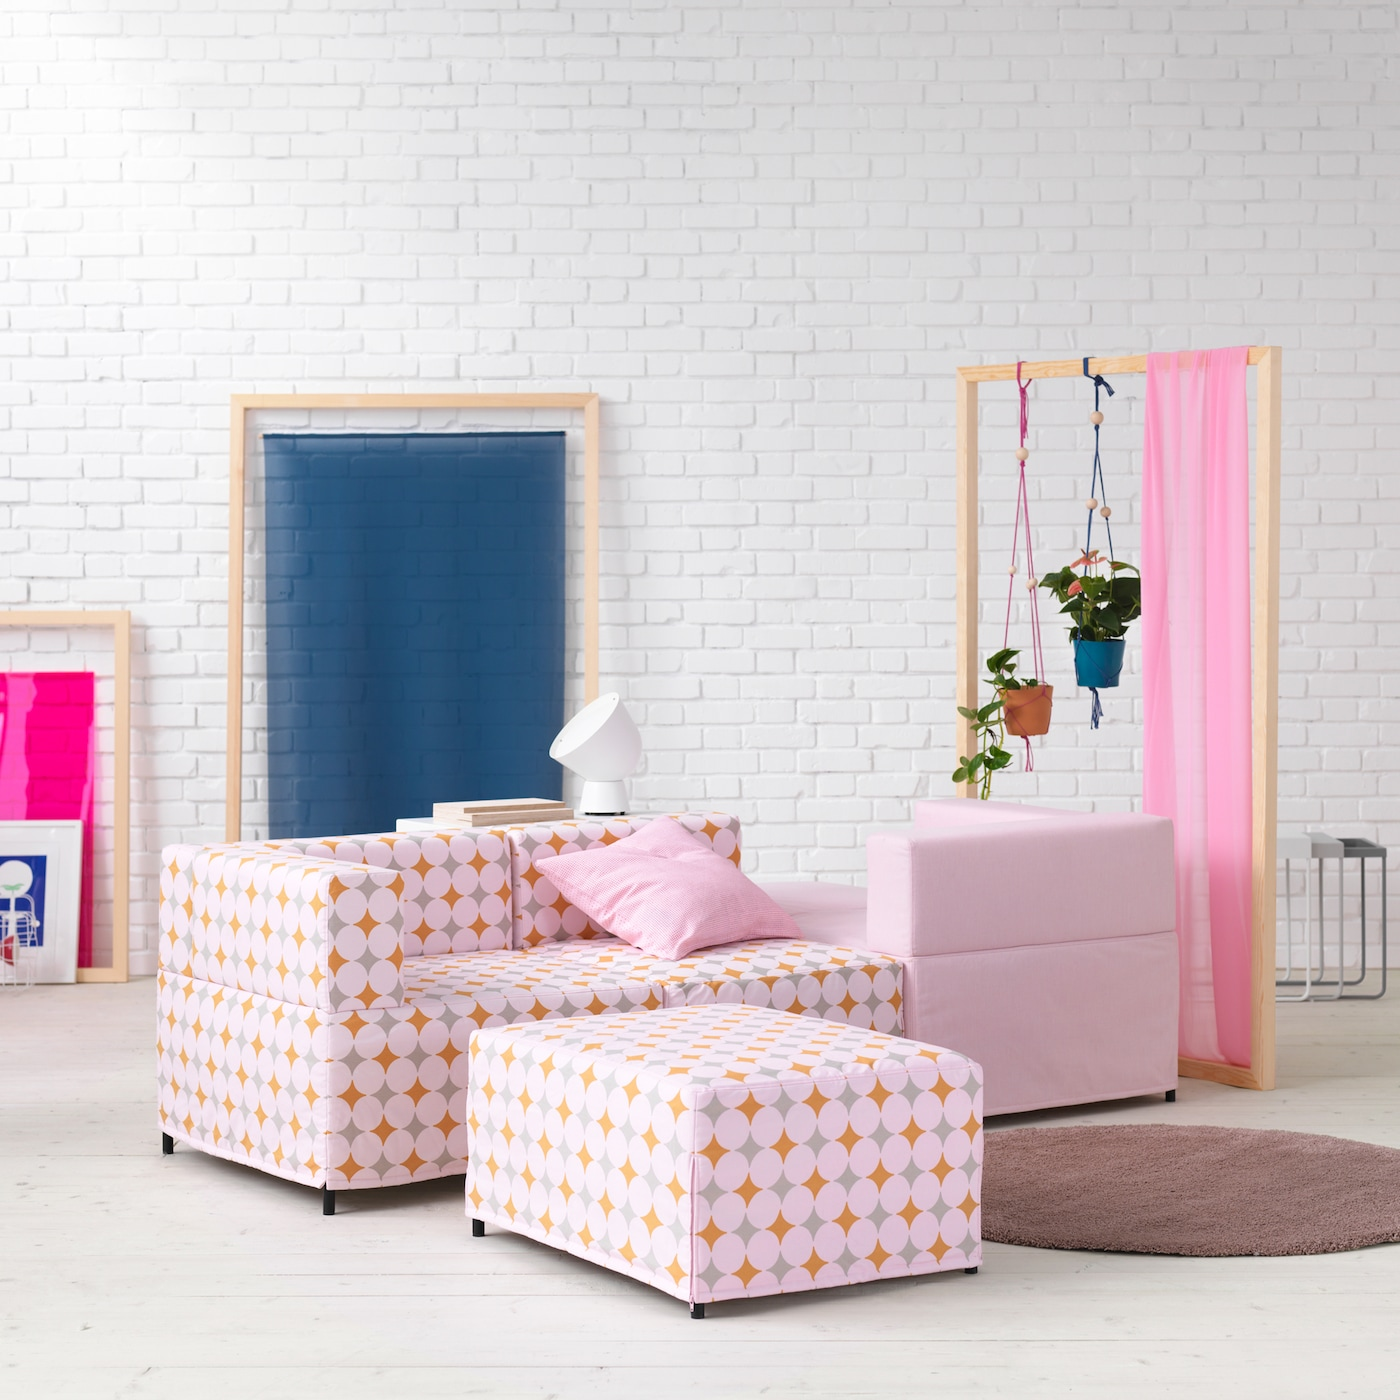 Affordable KUNGSHAMN modular sofa built in a creative way, with pink and pastel patterned covers, with a round rug.